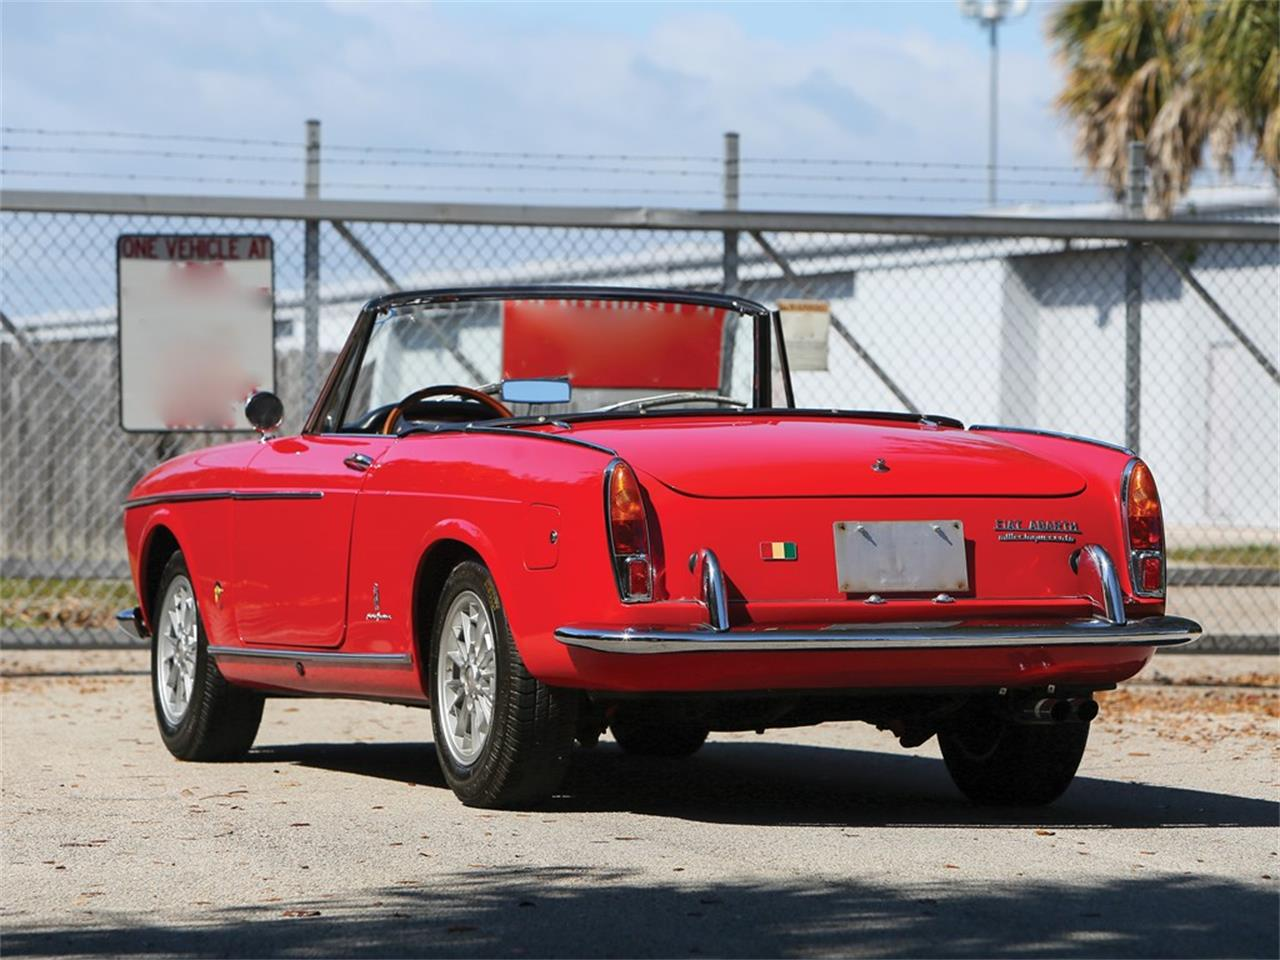 1965 Fiat Abarth 1500 for sale in Fort Lauderdale, FL – photo 2